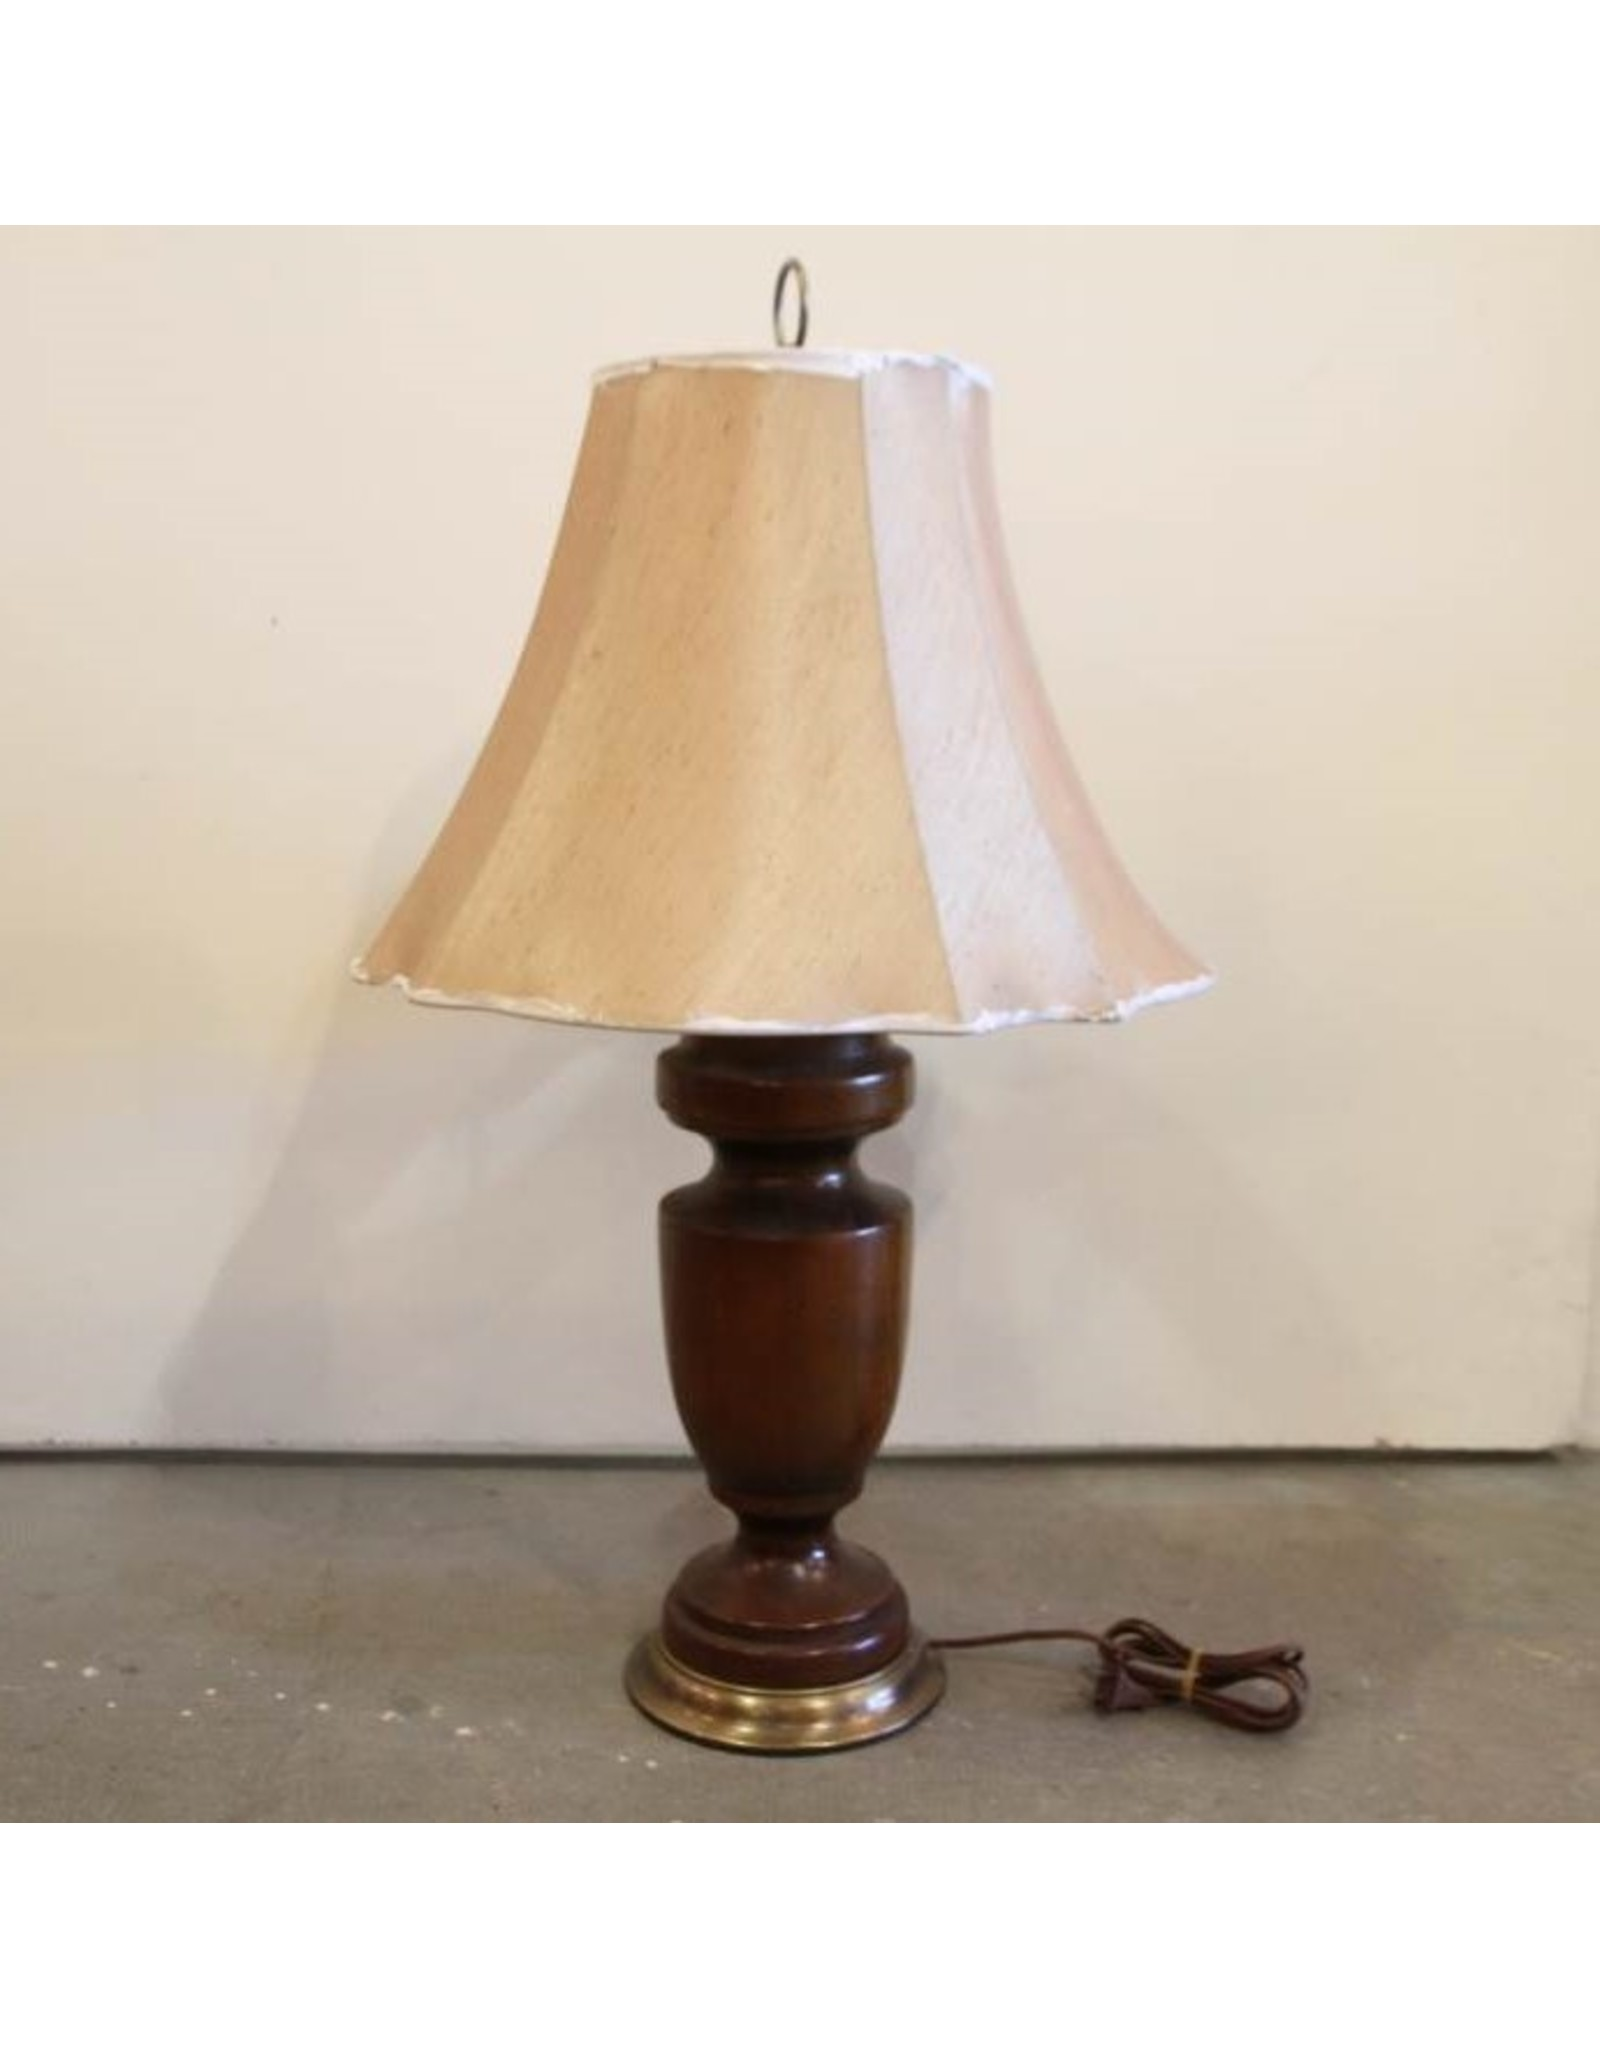 Pair of Antique wooden Lamps